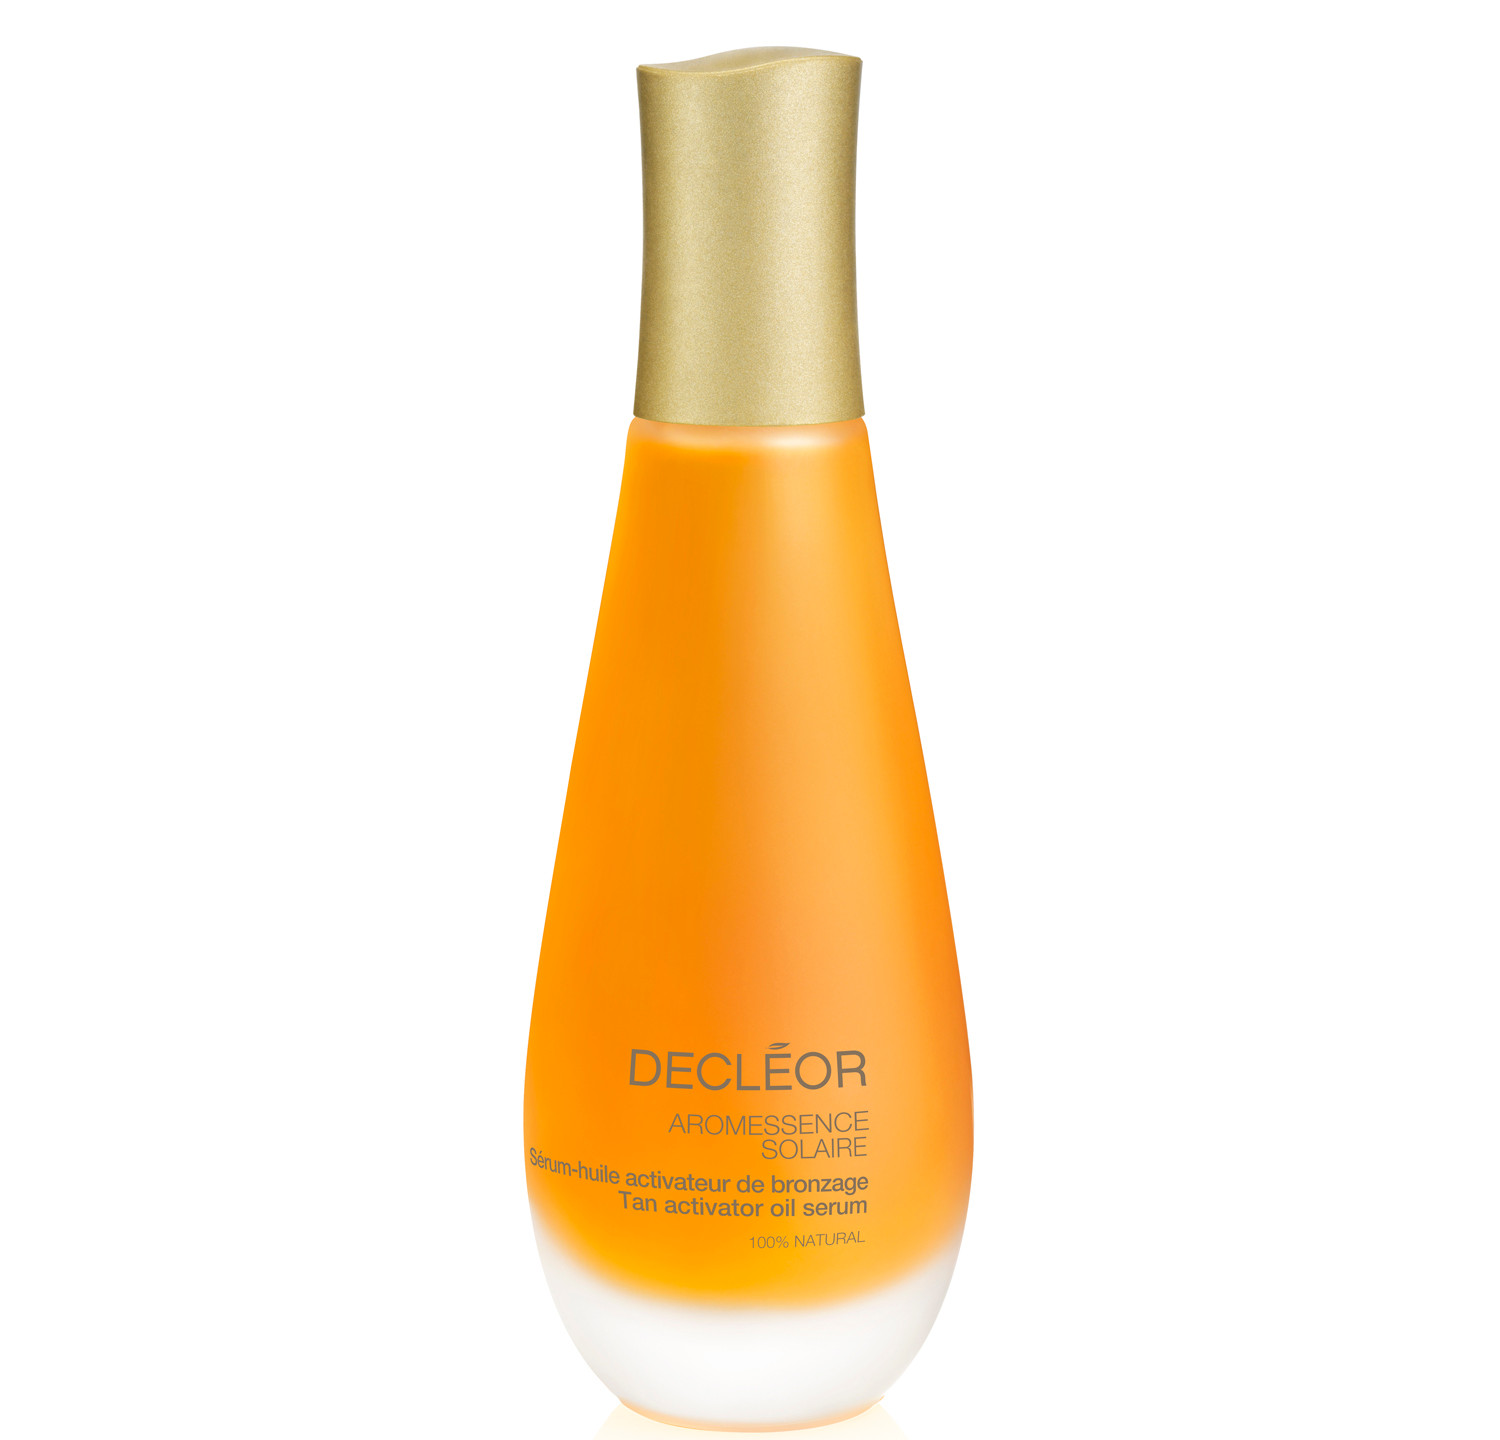 Aromessence Solaire Tan Activator